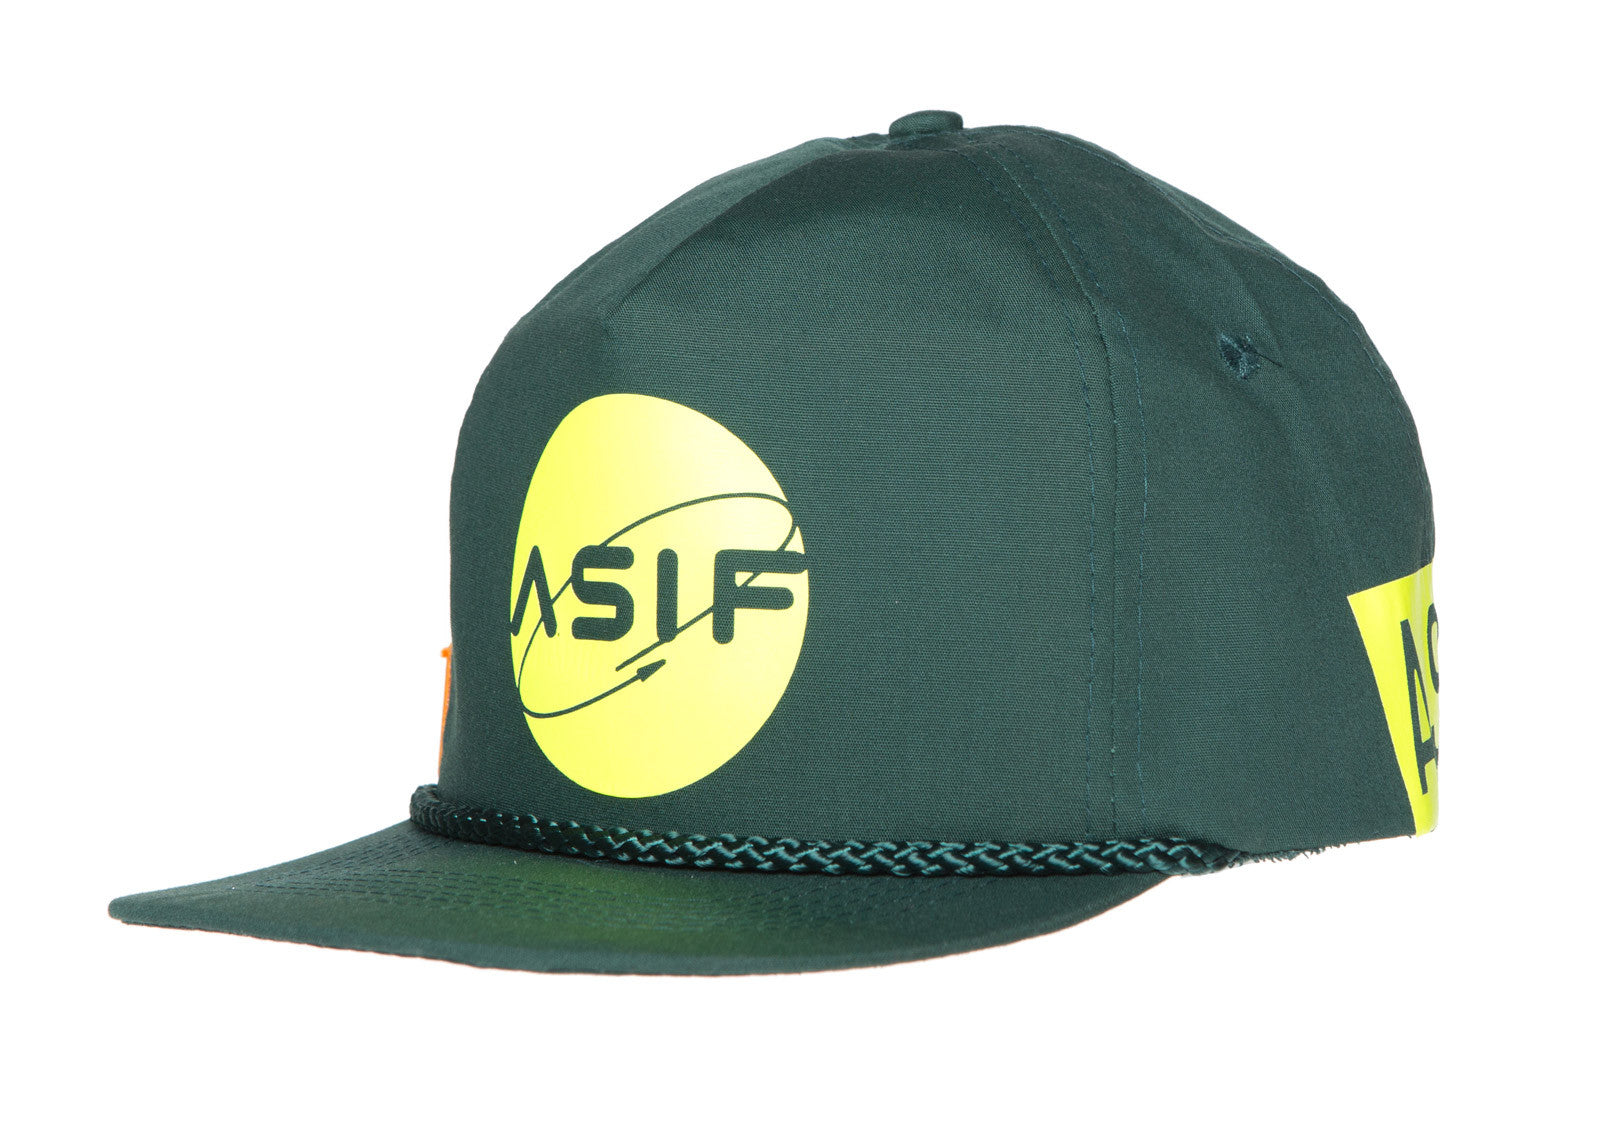 ASIF x DWEEBS SPONSORSHIP PROGRAM TRUCKER CAP - ASIF (as seen in the future)